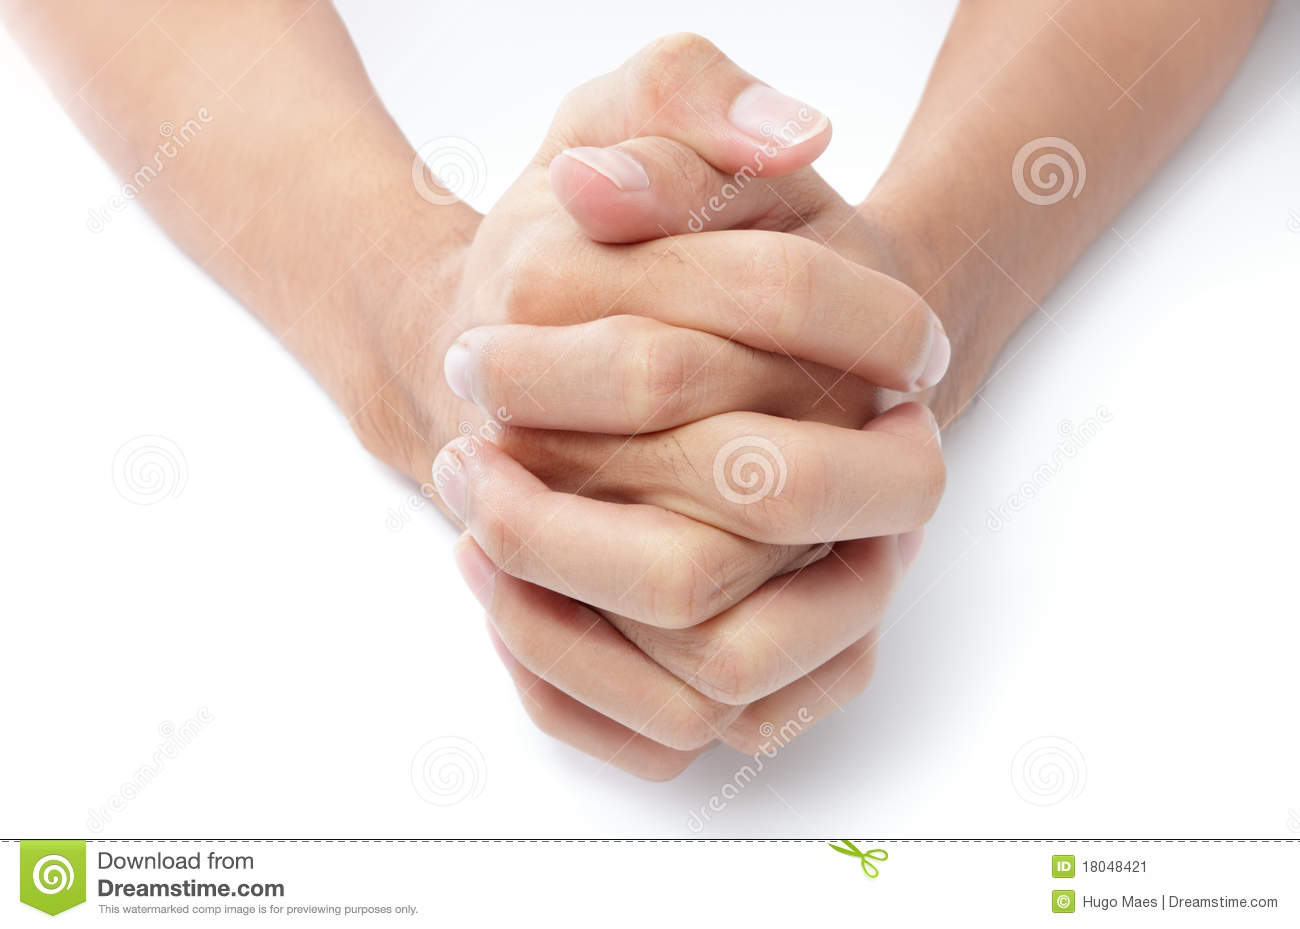 ... two hands folded with intertwined fingers praying on a white desktop